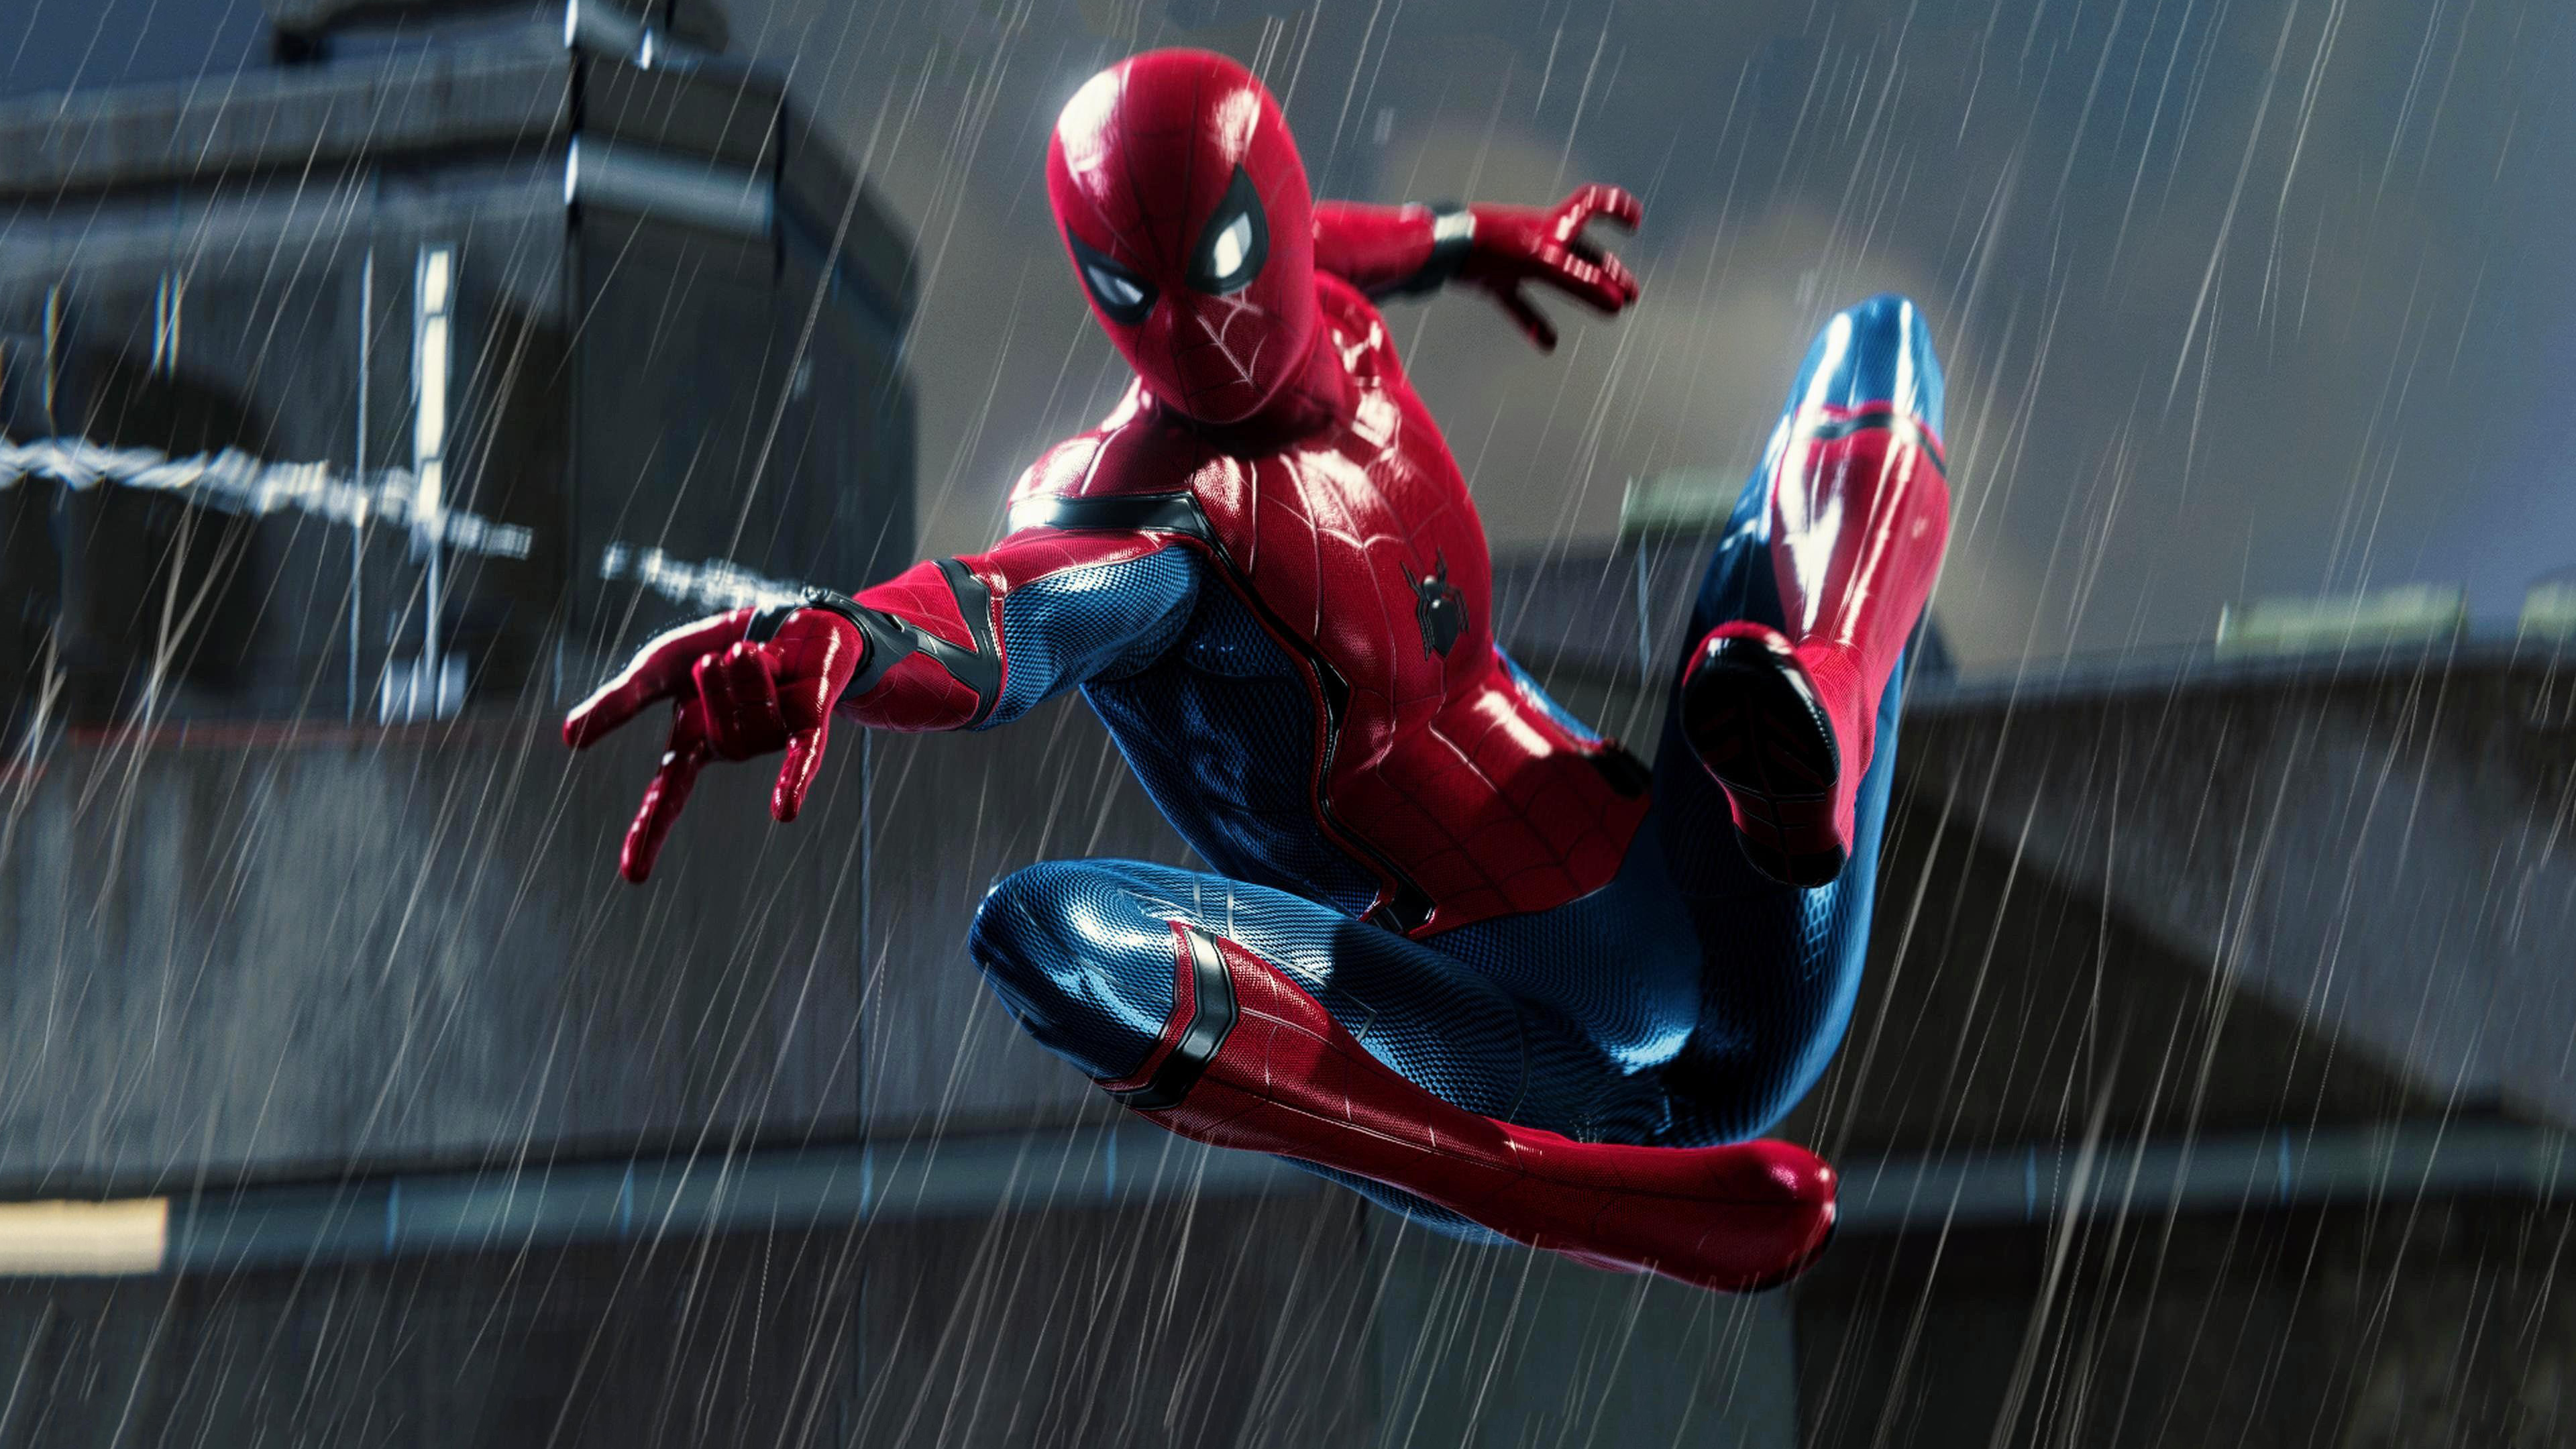 spiderman 4k 2018 artwork 1543620359 - Spiderman 4k 2018 Artwork - superheroes wallpapers, spiderman wallpapers, reddit wallpapers, hd-wallpapers, digital art wallpapers, artwork wallpapers, 4k-wallpapers